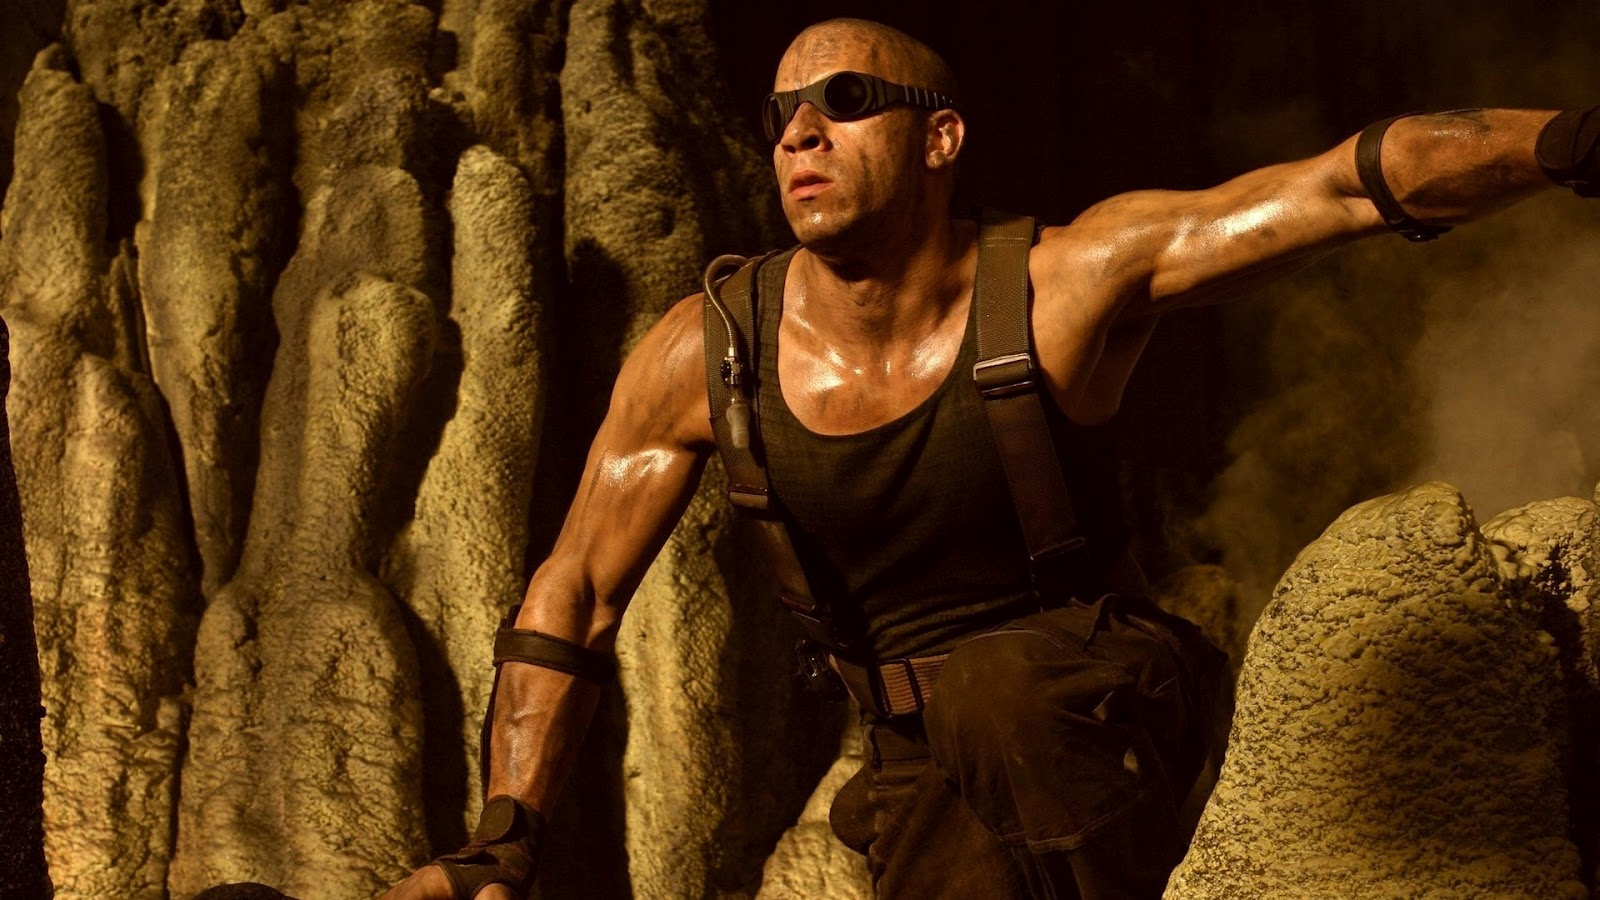 http://2.bp.blogspot.com/-ZLhcjl_-CPk/UGenHtd7wkI/AAAAAAAAE_I/Jx6cmzBVNmU/s1600/Vin-Diesel-The-Chronicles-Of-Riddick-Wallpapers.jpg